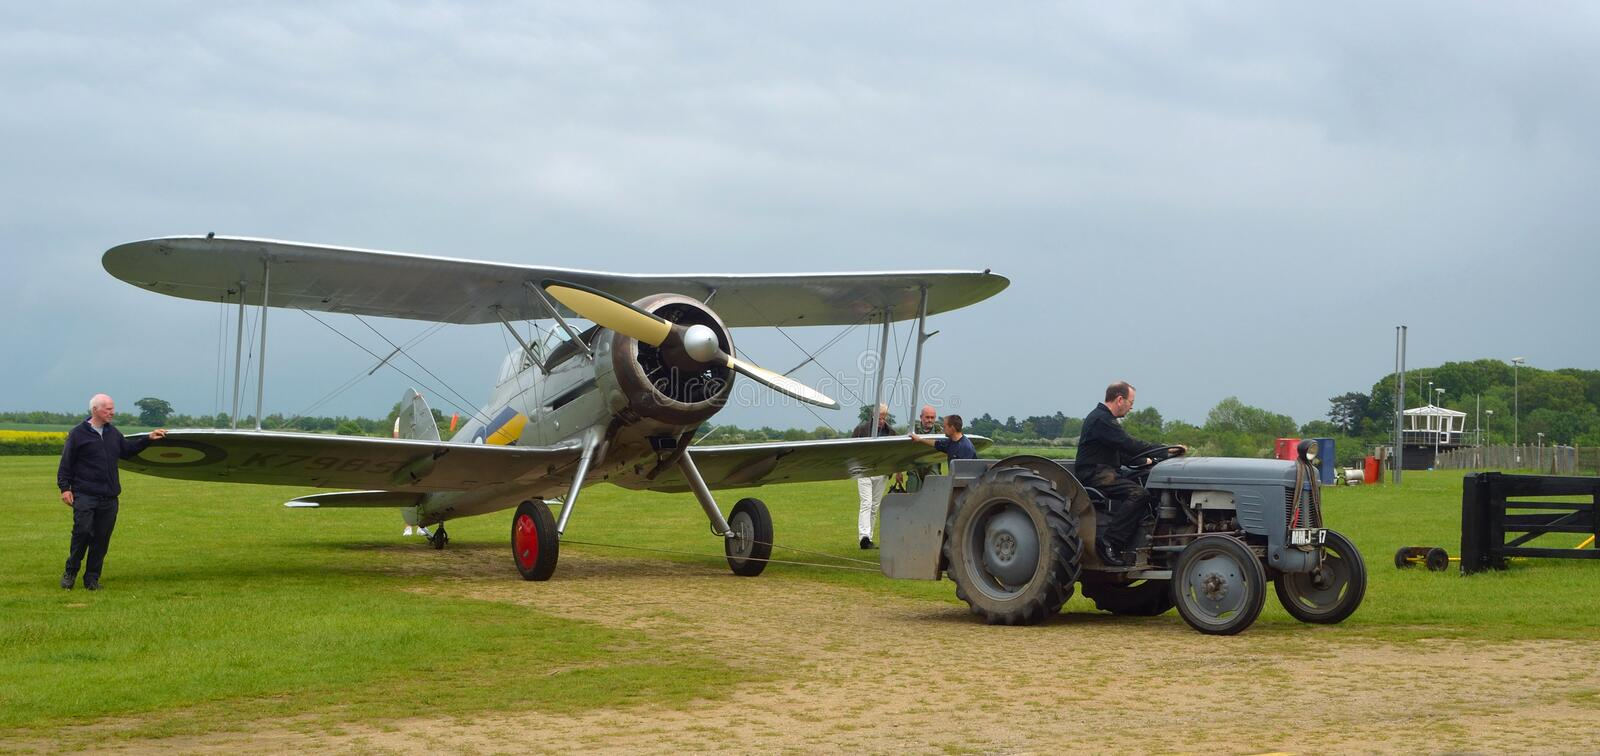 Gloster Gladiator being towed to hanger. royalty free stock image